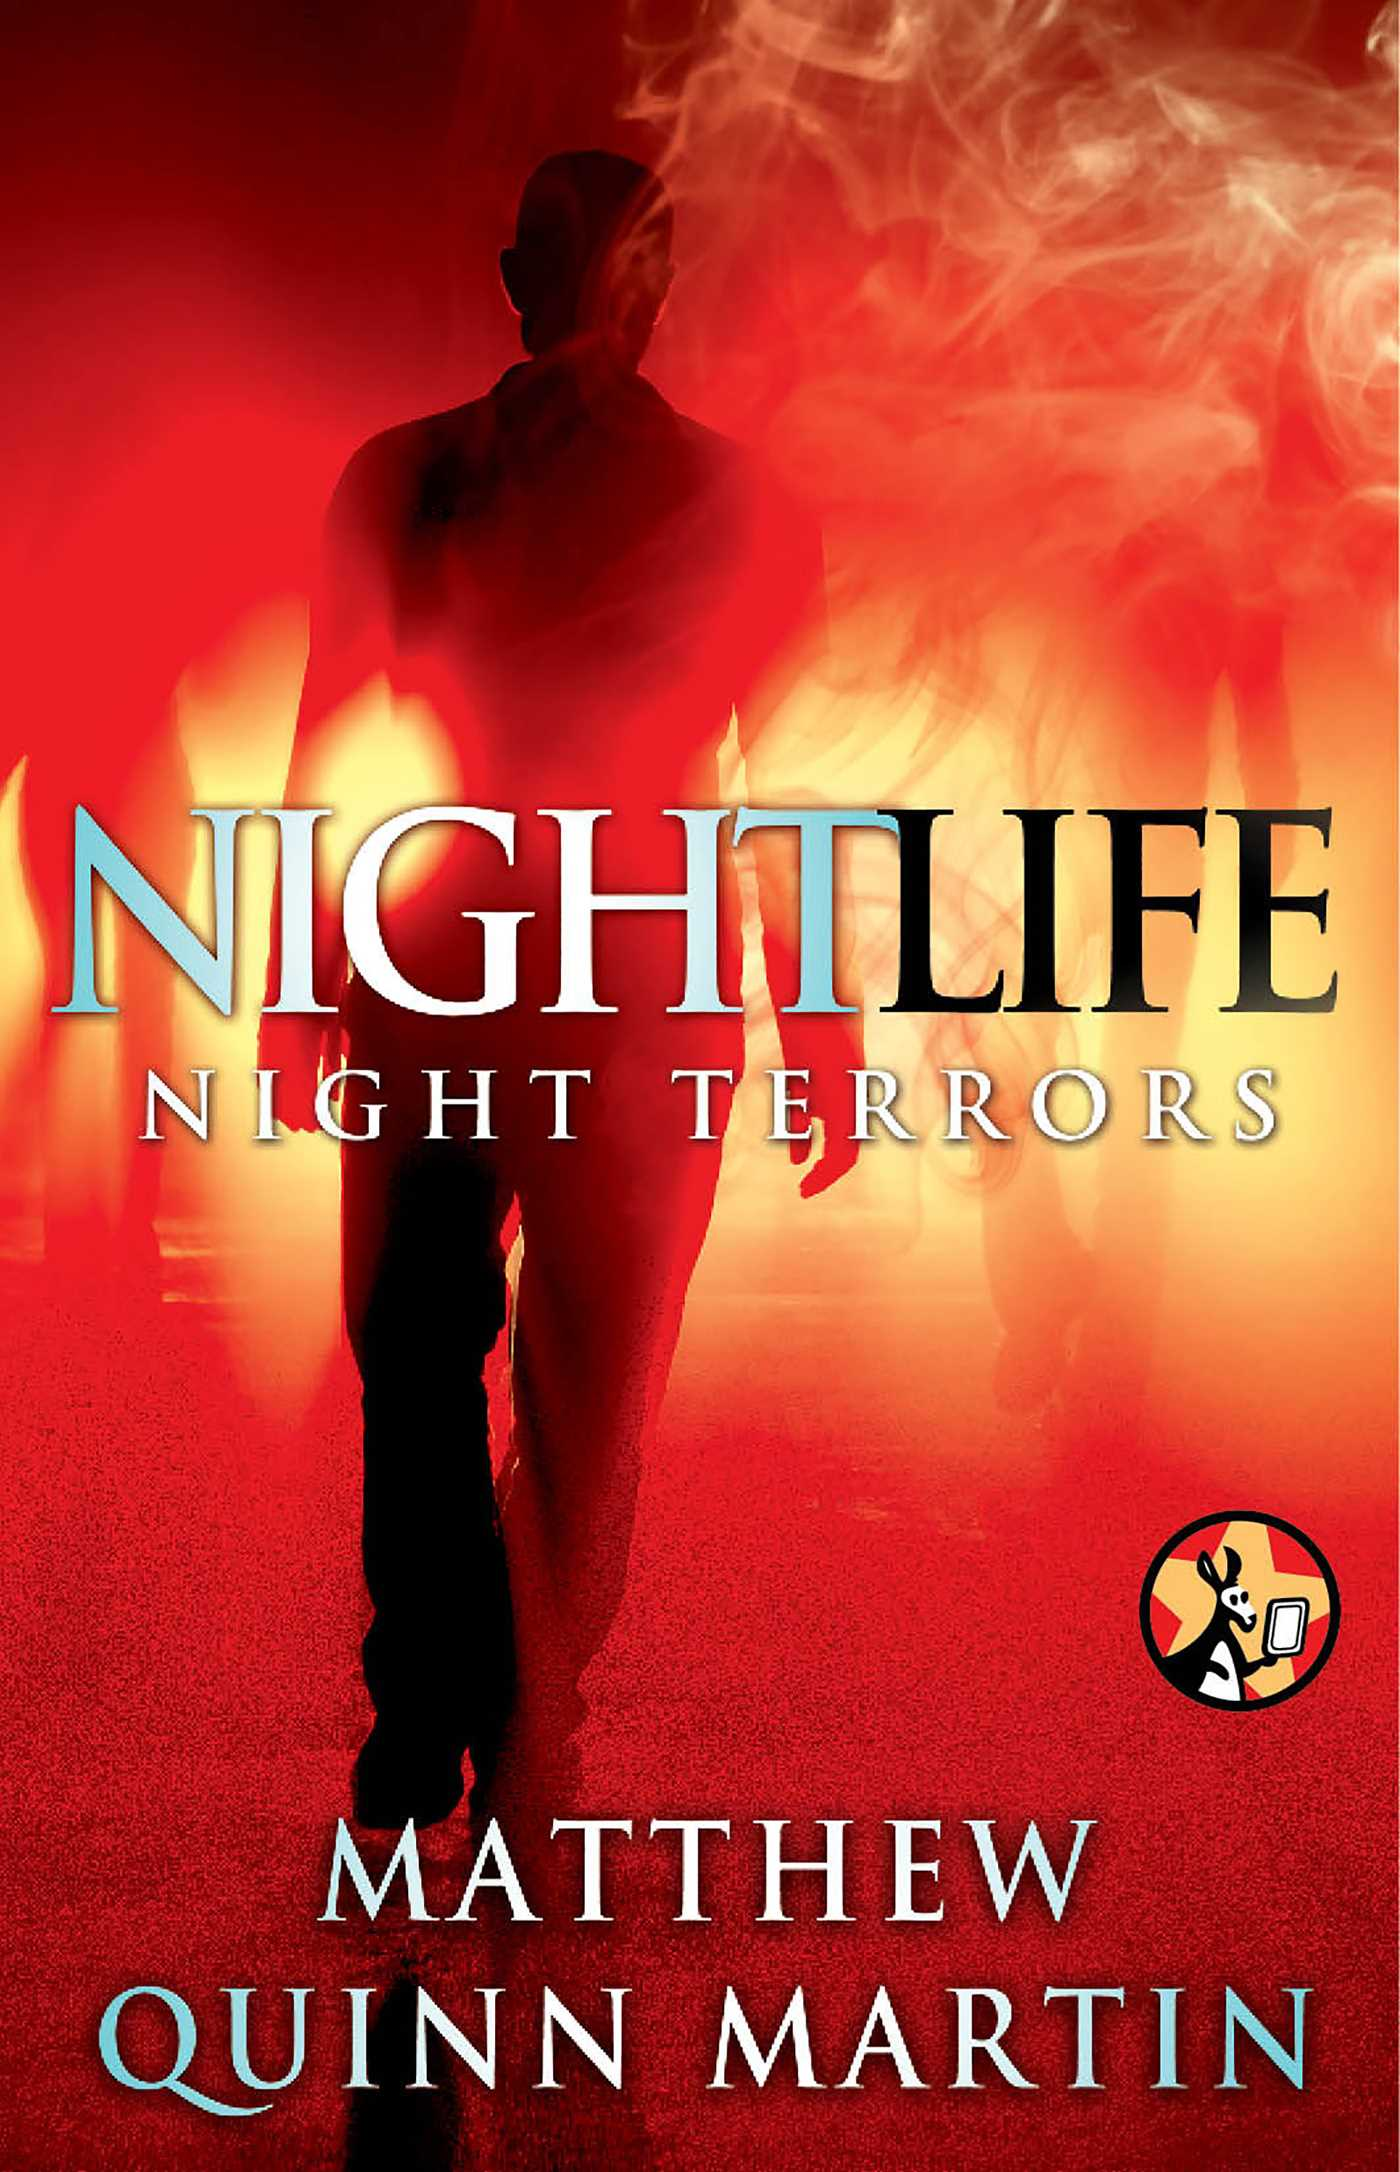 Nightlife night terrors 9781476746906 hr